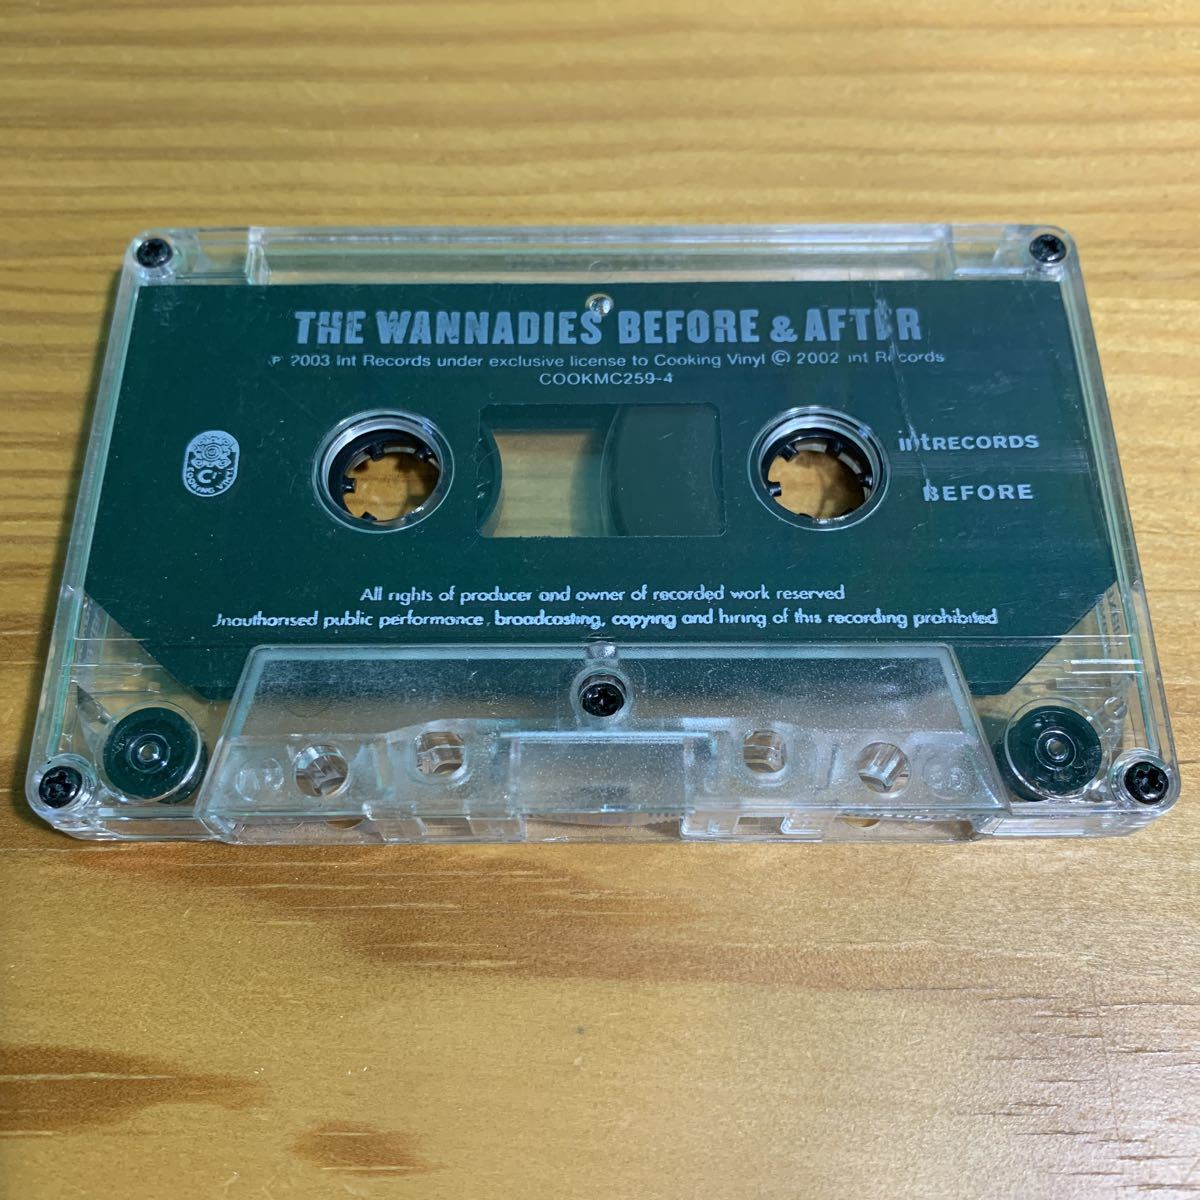 The Wannadies「Before & After」カセットテープ 輸入盤 正規品 OFFICIAL アナログ ワナダイズ ギターポップ パンク天国 2003 名作 激レア!_画像5